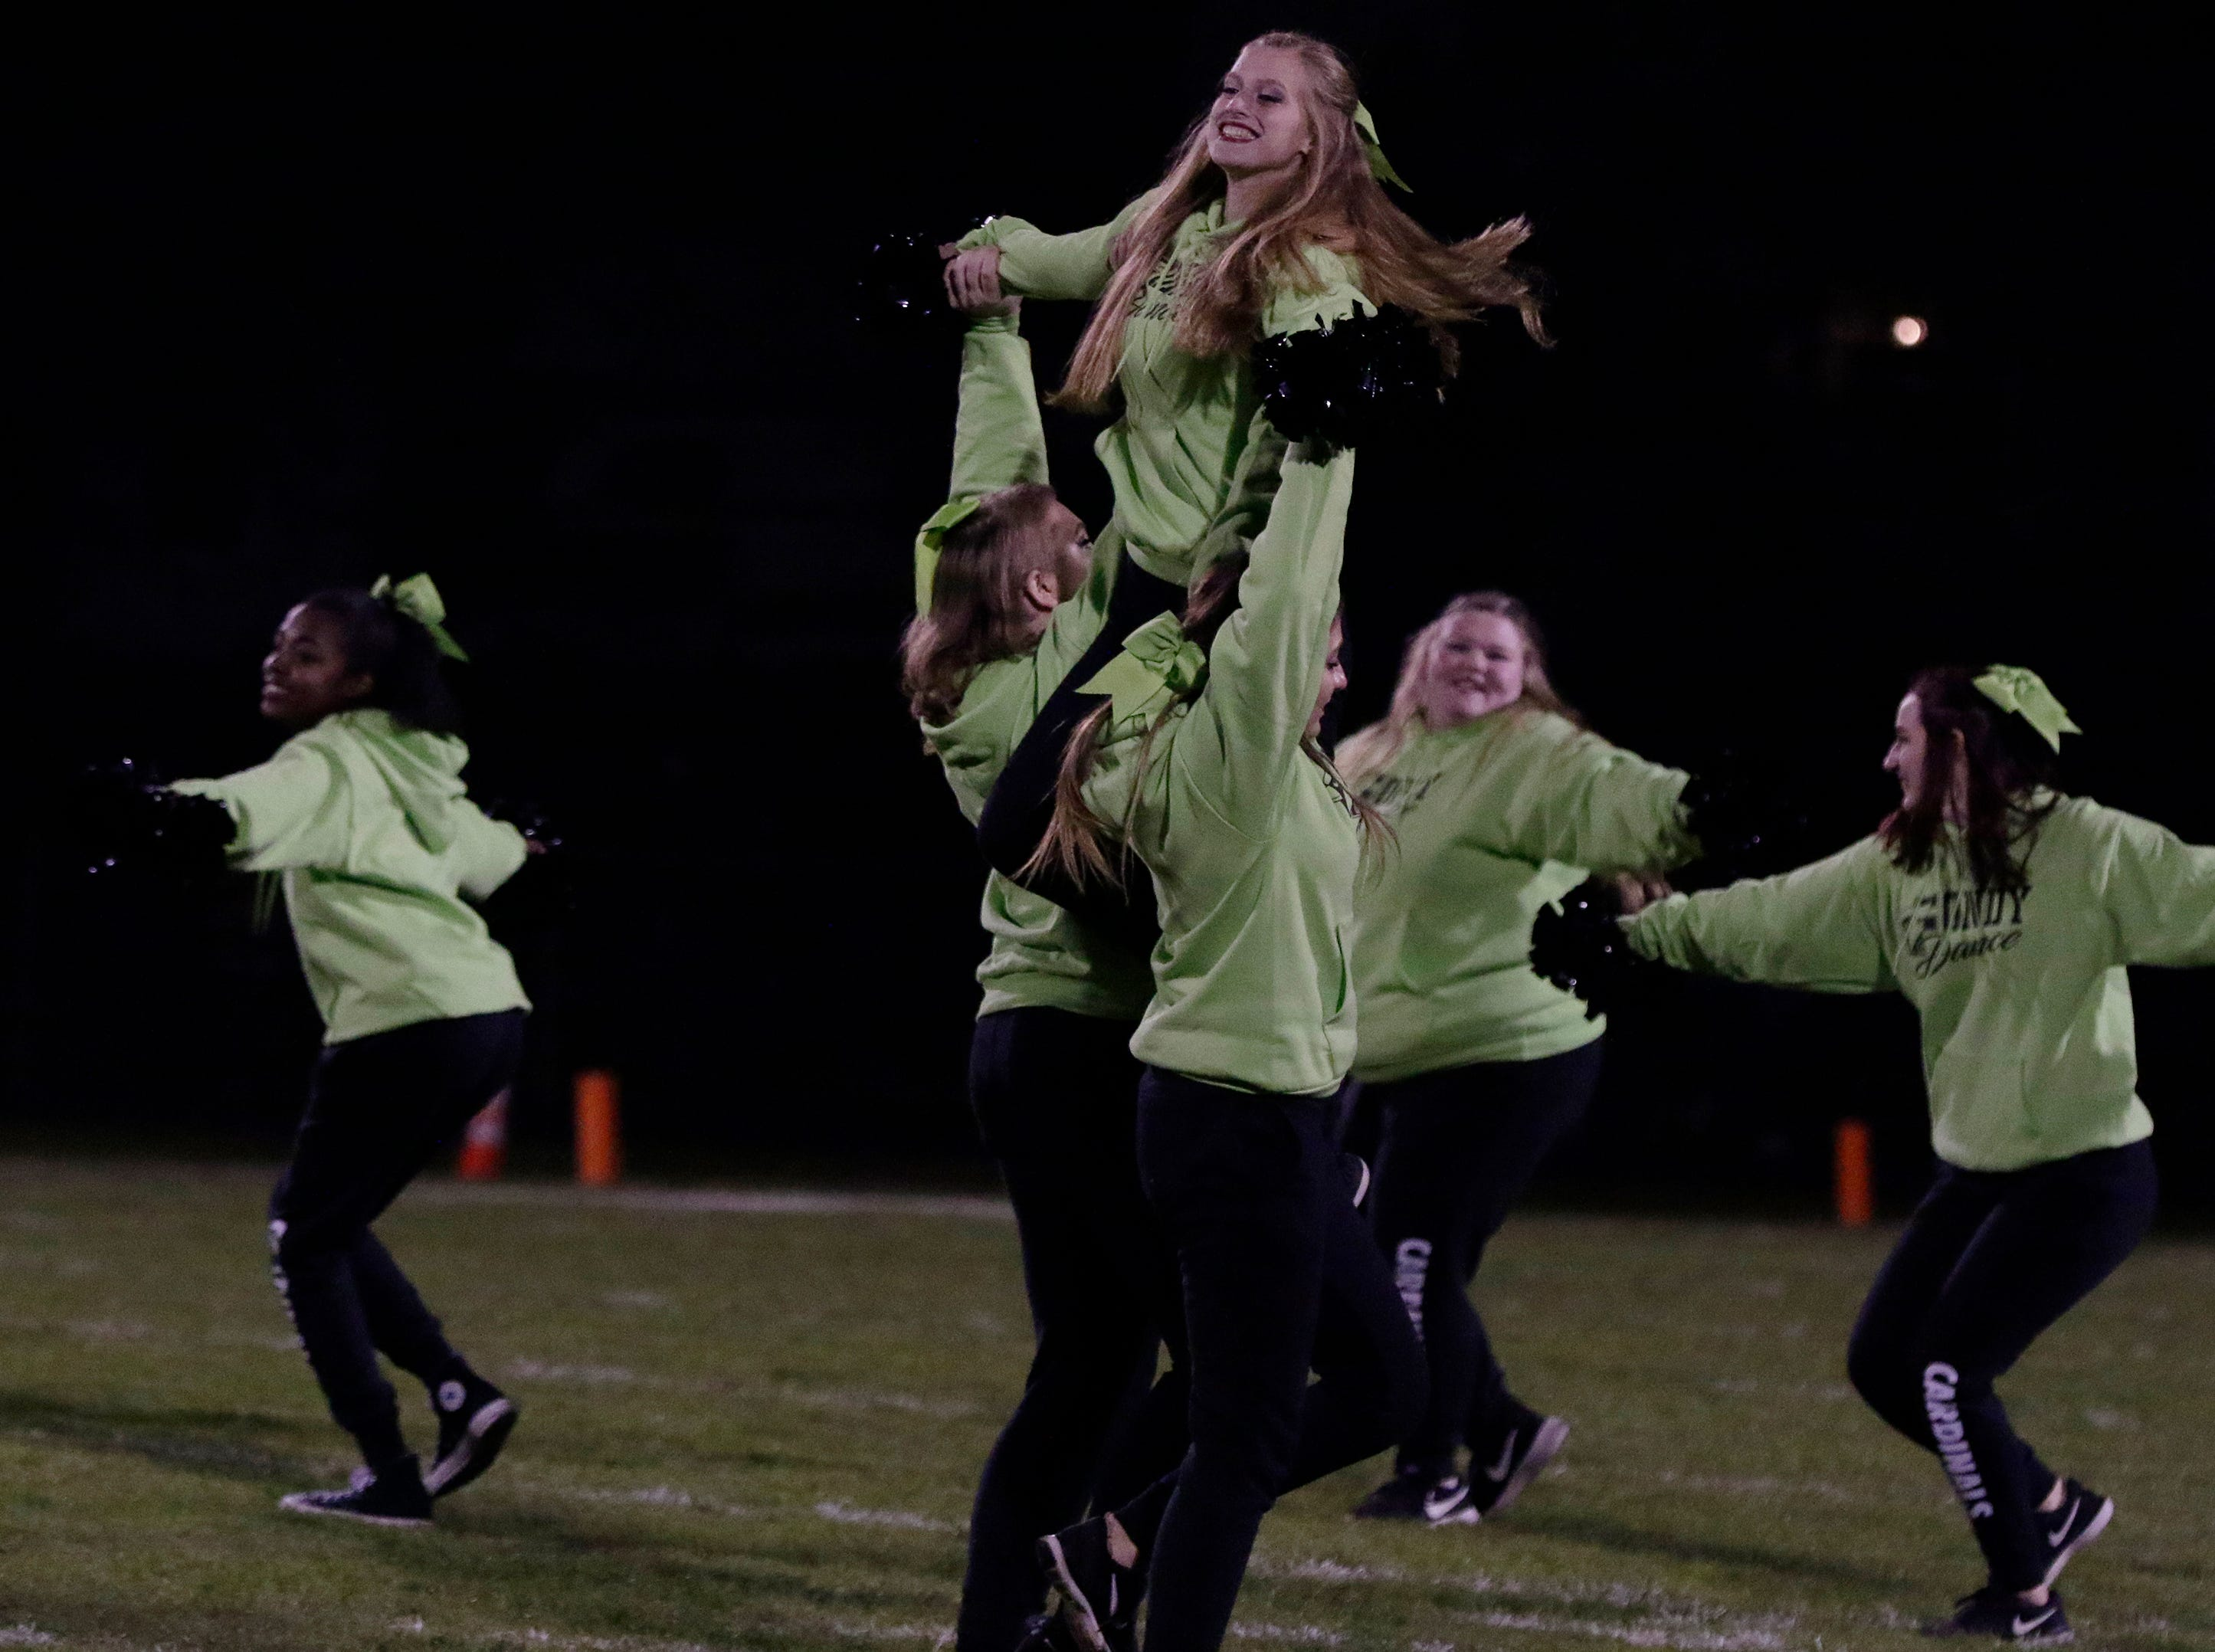 The Fond du Lac dance team performed at half time in honor of  St Mary's Springs junior Trent Schueffner #62 who died in a hunting accident.  The fans raised over $4000 for the family.  Fond du Lac Cardinals played Arrowhead Warhawks in WIAA football playoff sectionals, Friday, Oct. 26, 2018, at Fruth Field in Fond du Lac.Joe Sienkiewicz/USA Today NETWORK-Wisconsin